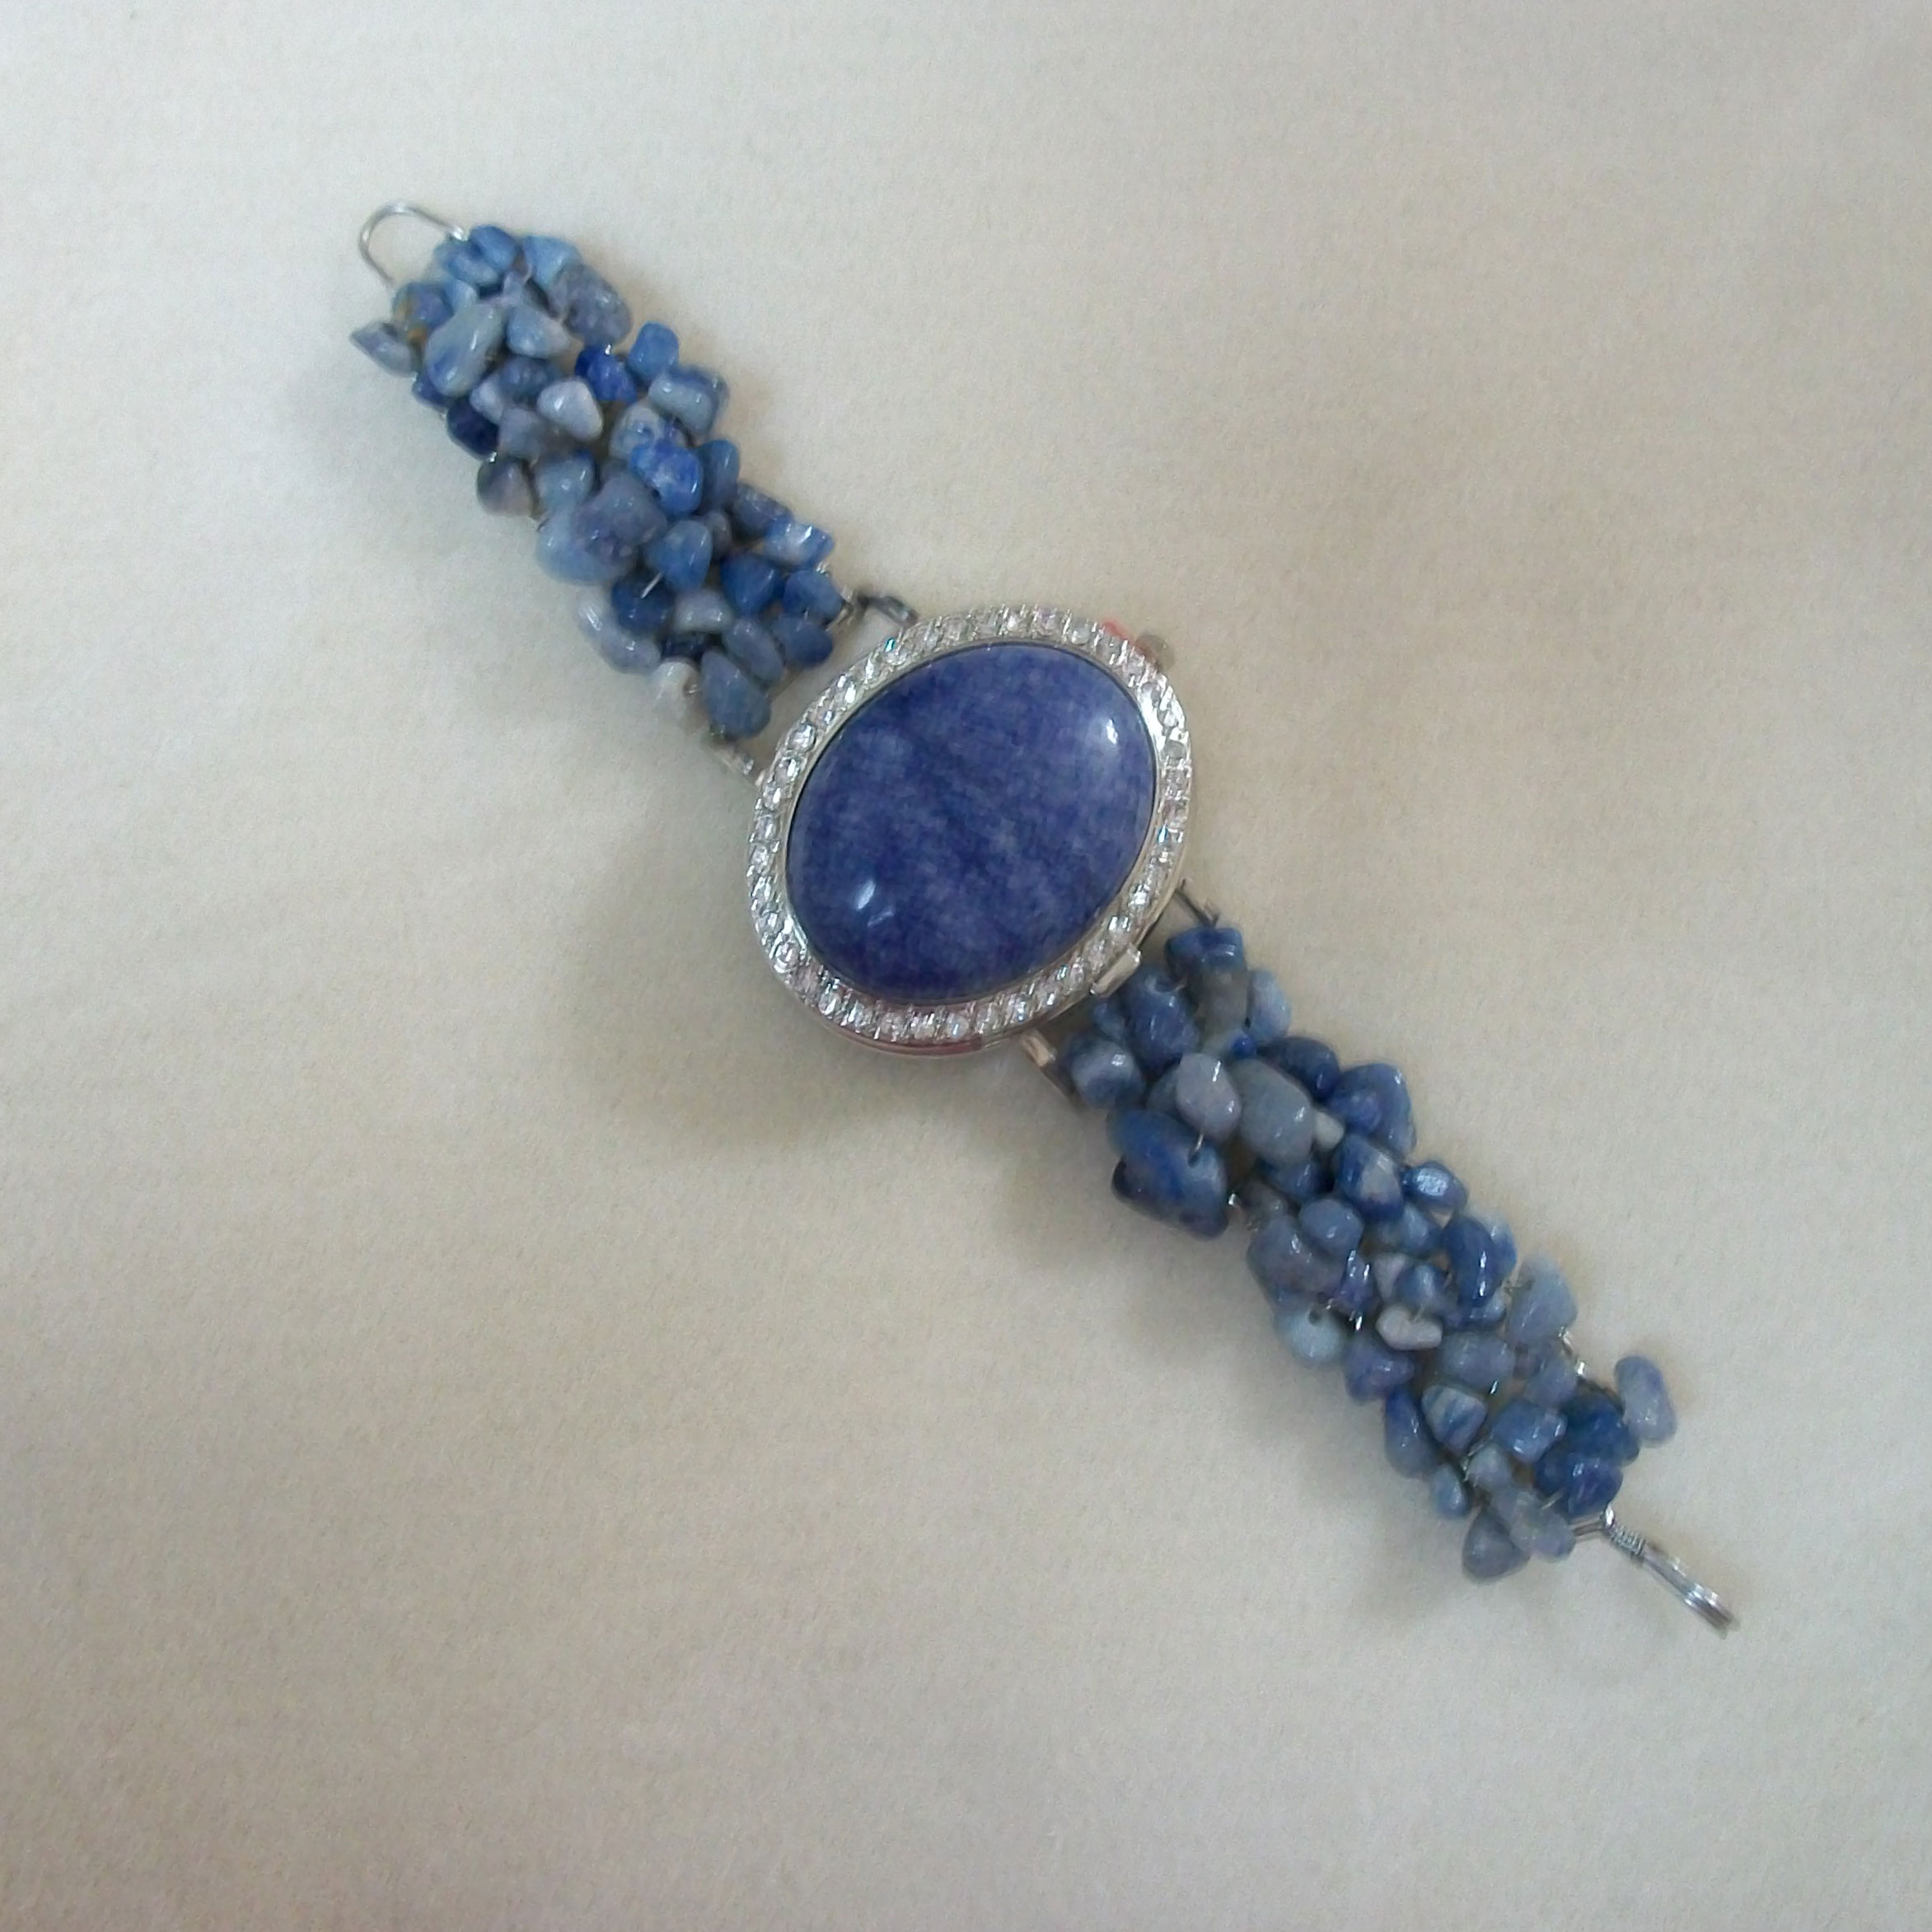 About Sodalite What Is Sodalite